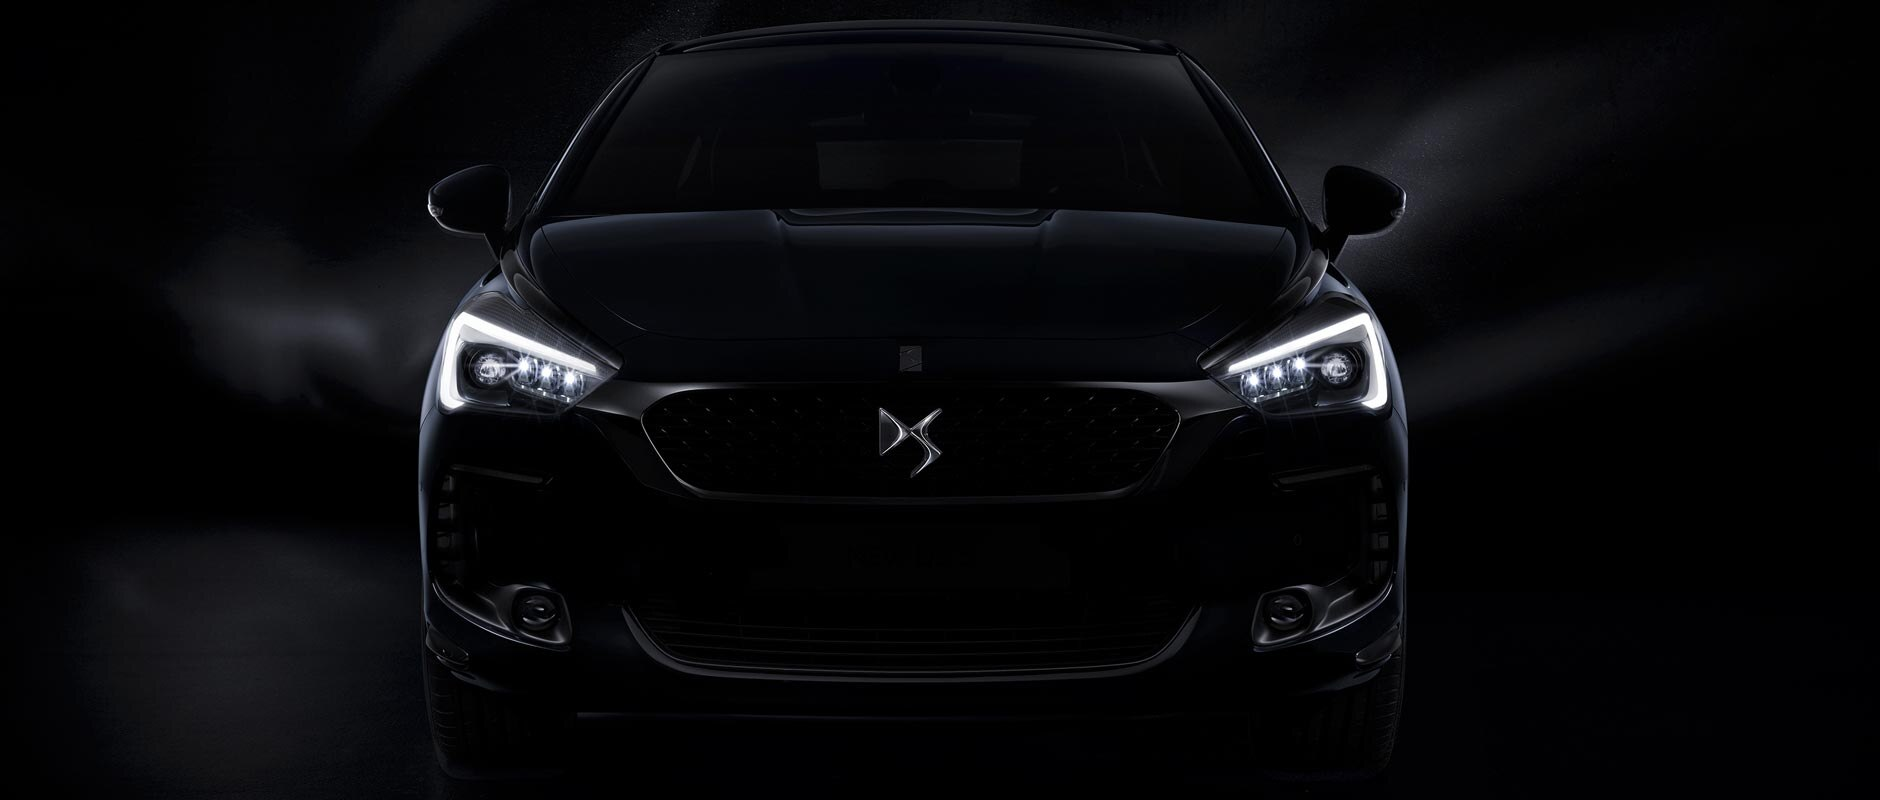 1880X800-New-DS5-Details-Techno-FEUXCommutation